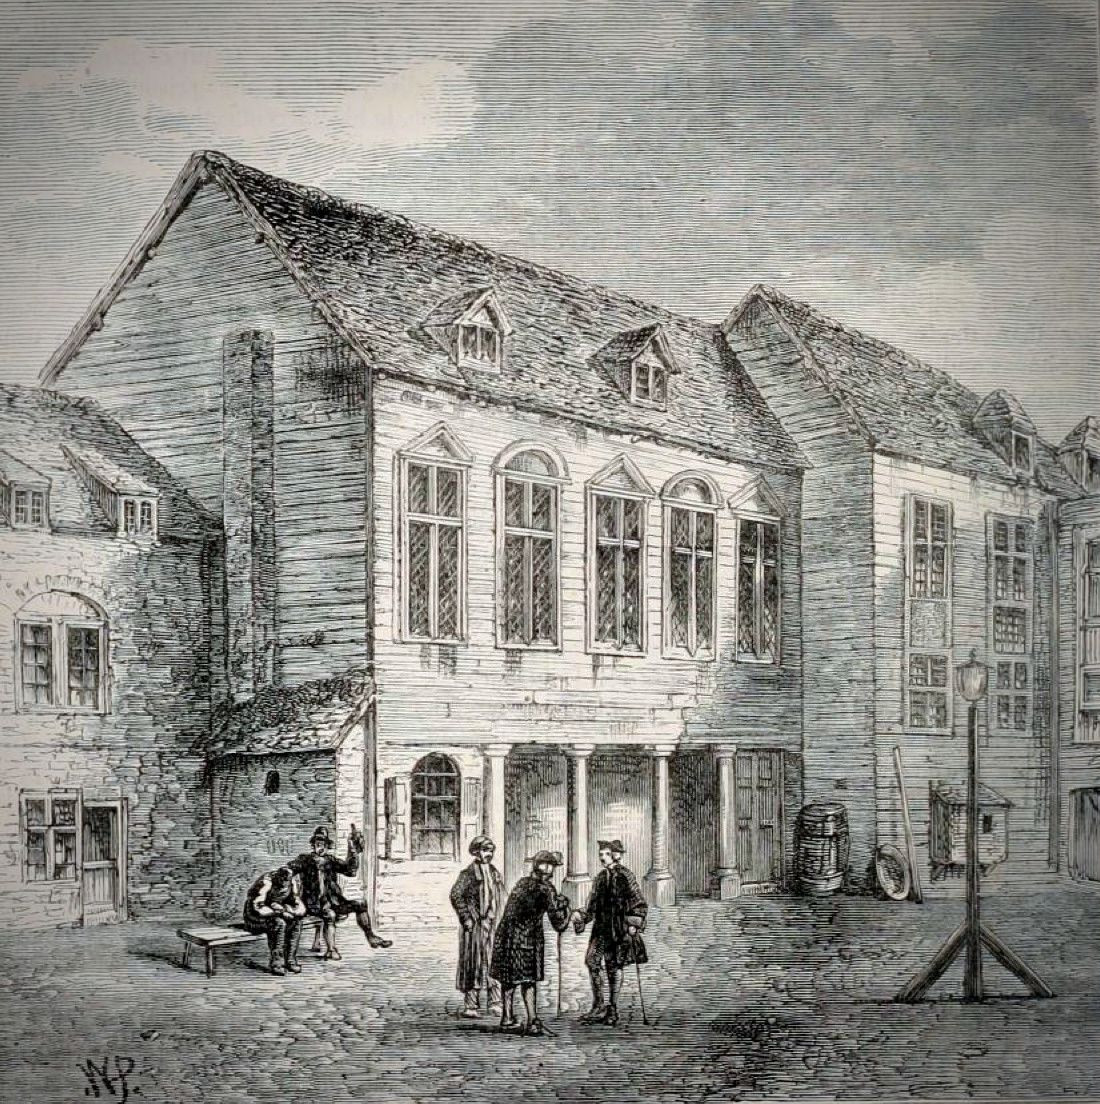 Marshalsea Debtors Prison